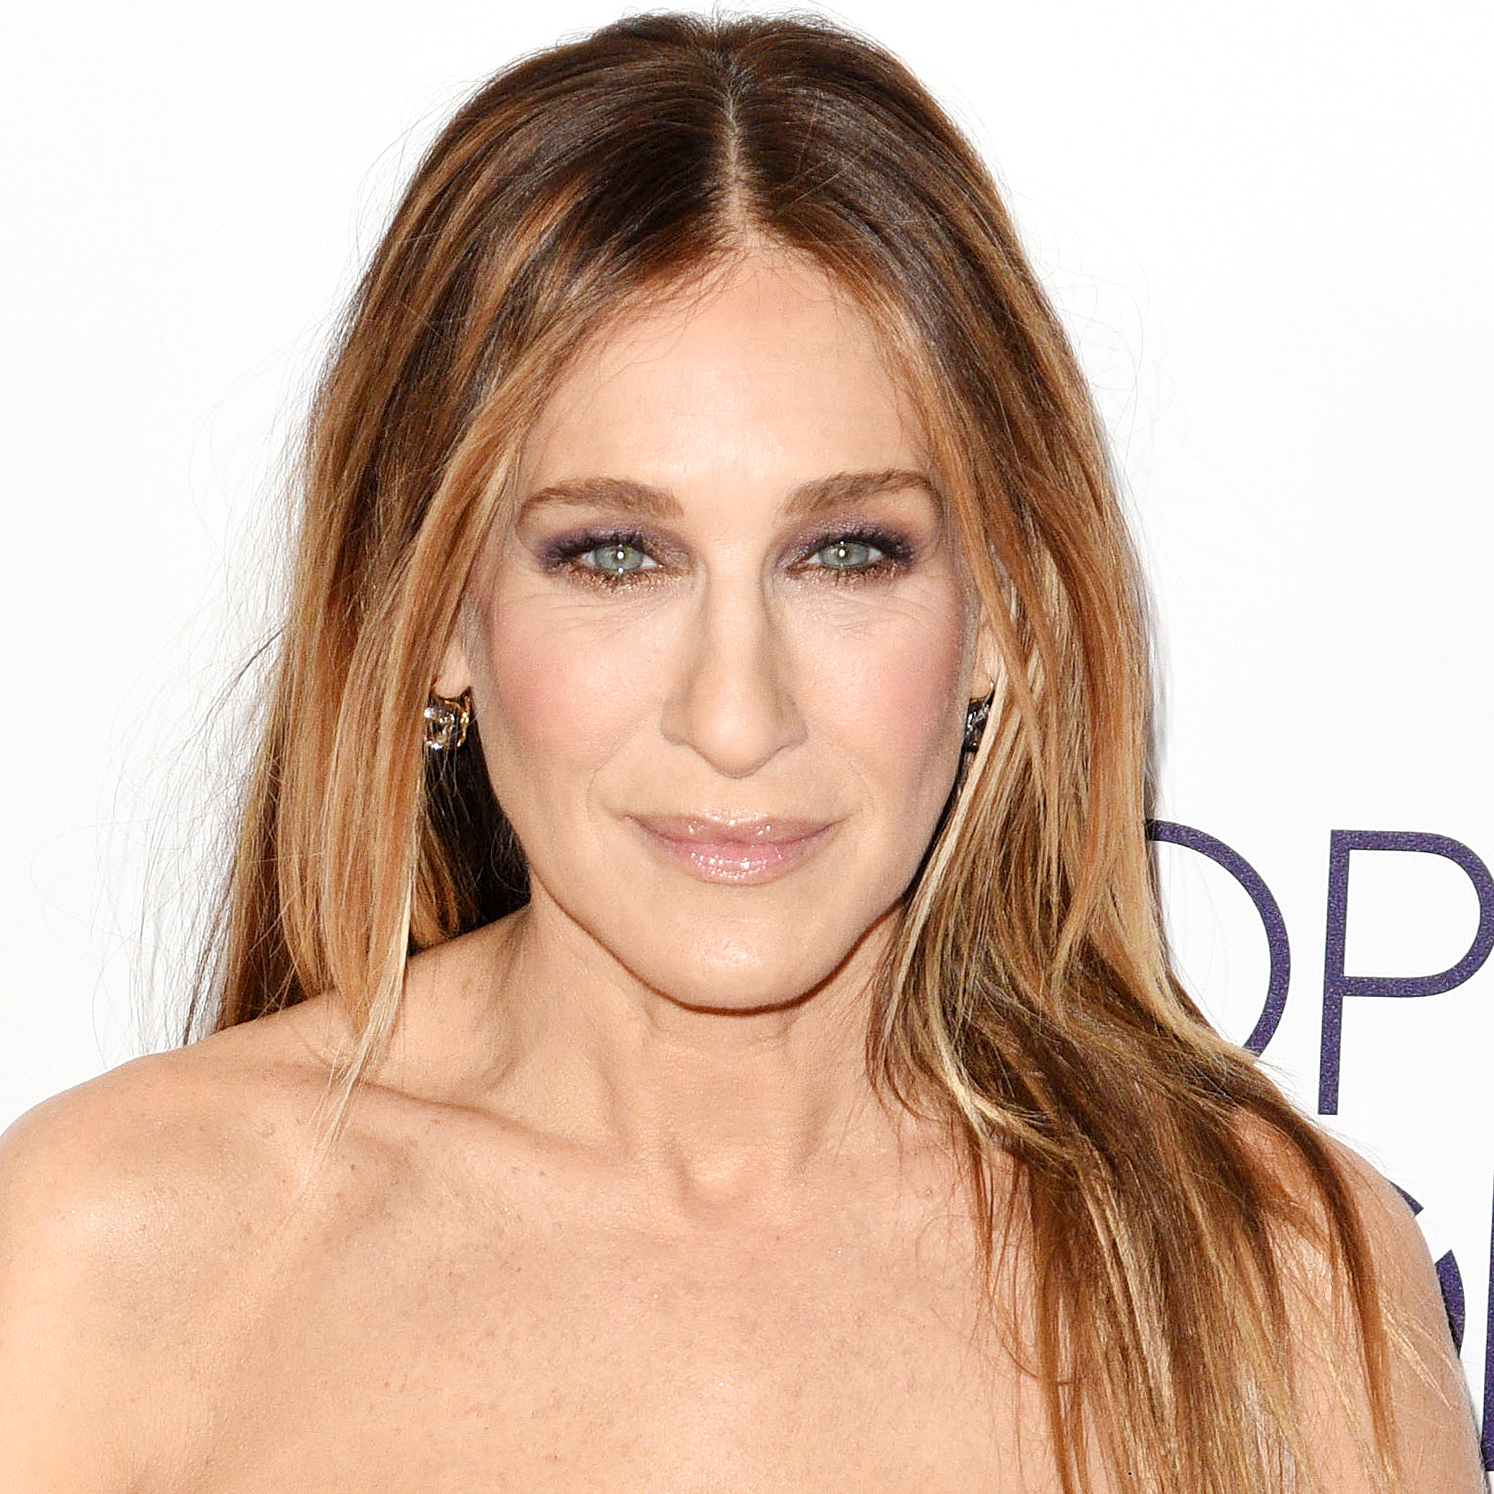 JANUARY 18:  Sarah Jessica Parker poses at the People's Choice Awards 2017 at Microsoft Theater on January 18, 2017 in Los Angeles, California.  (Photo by C Flanigan/Getty Images)